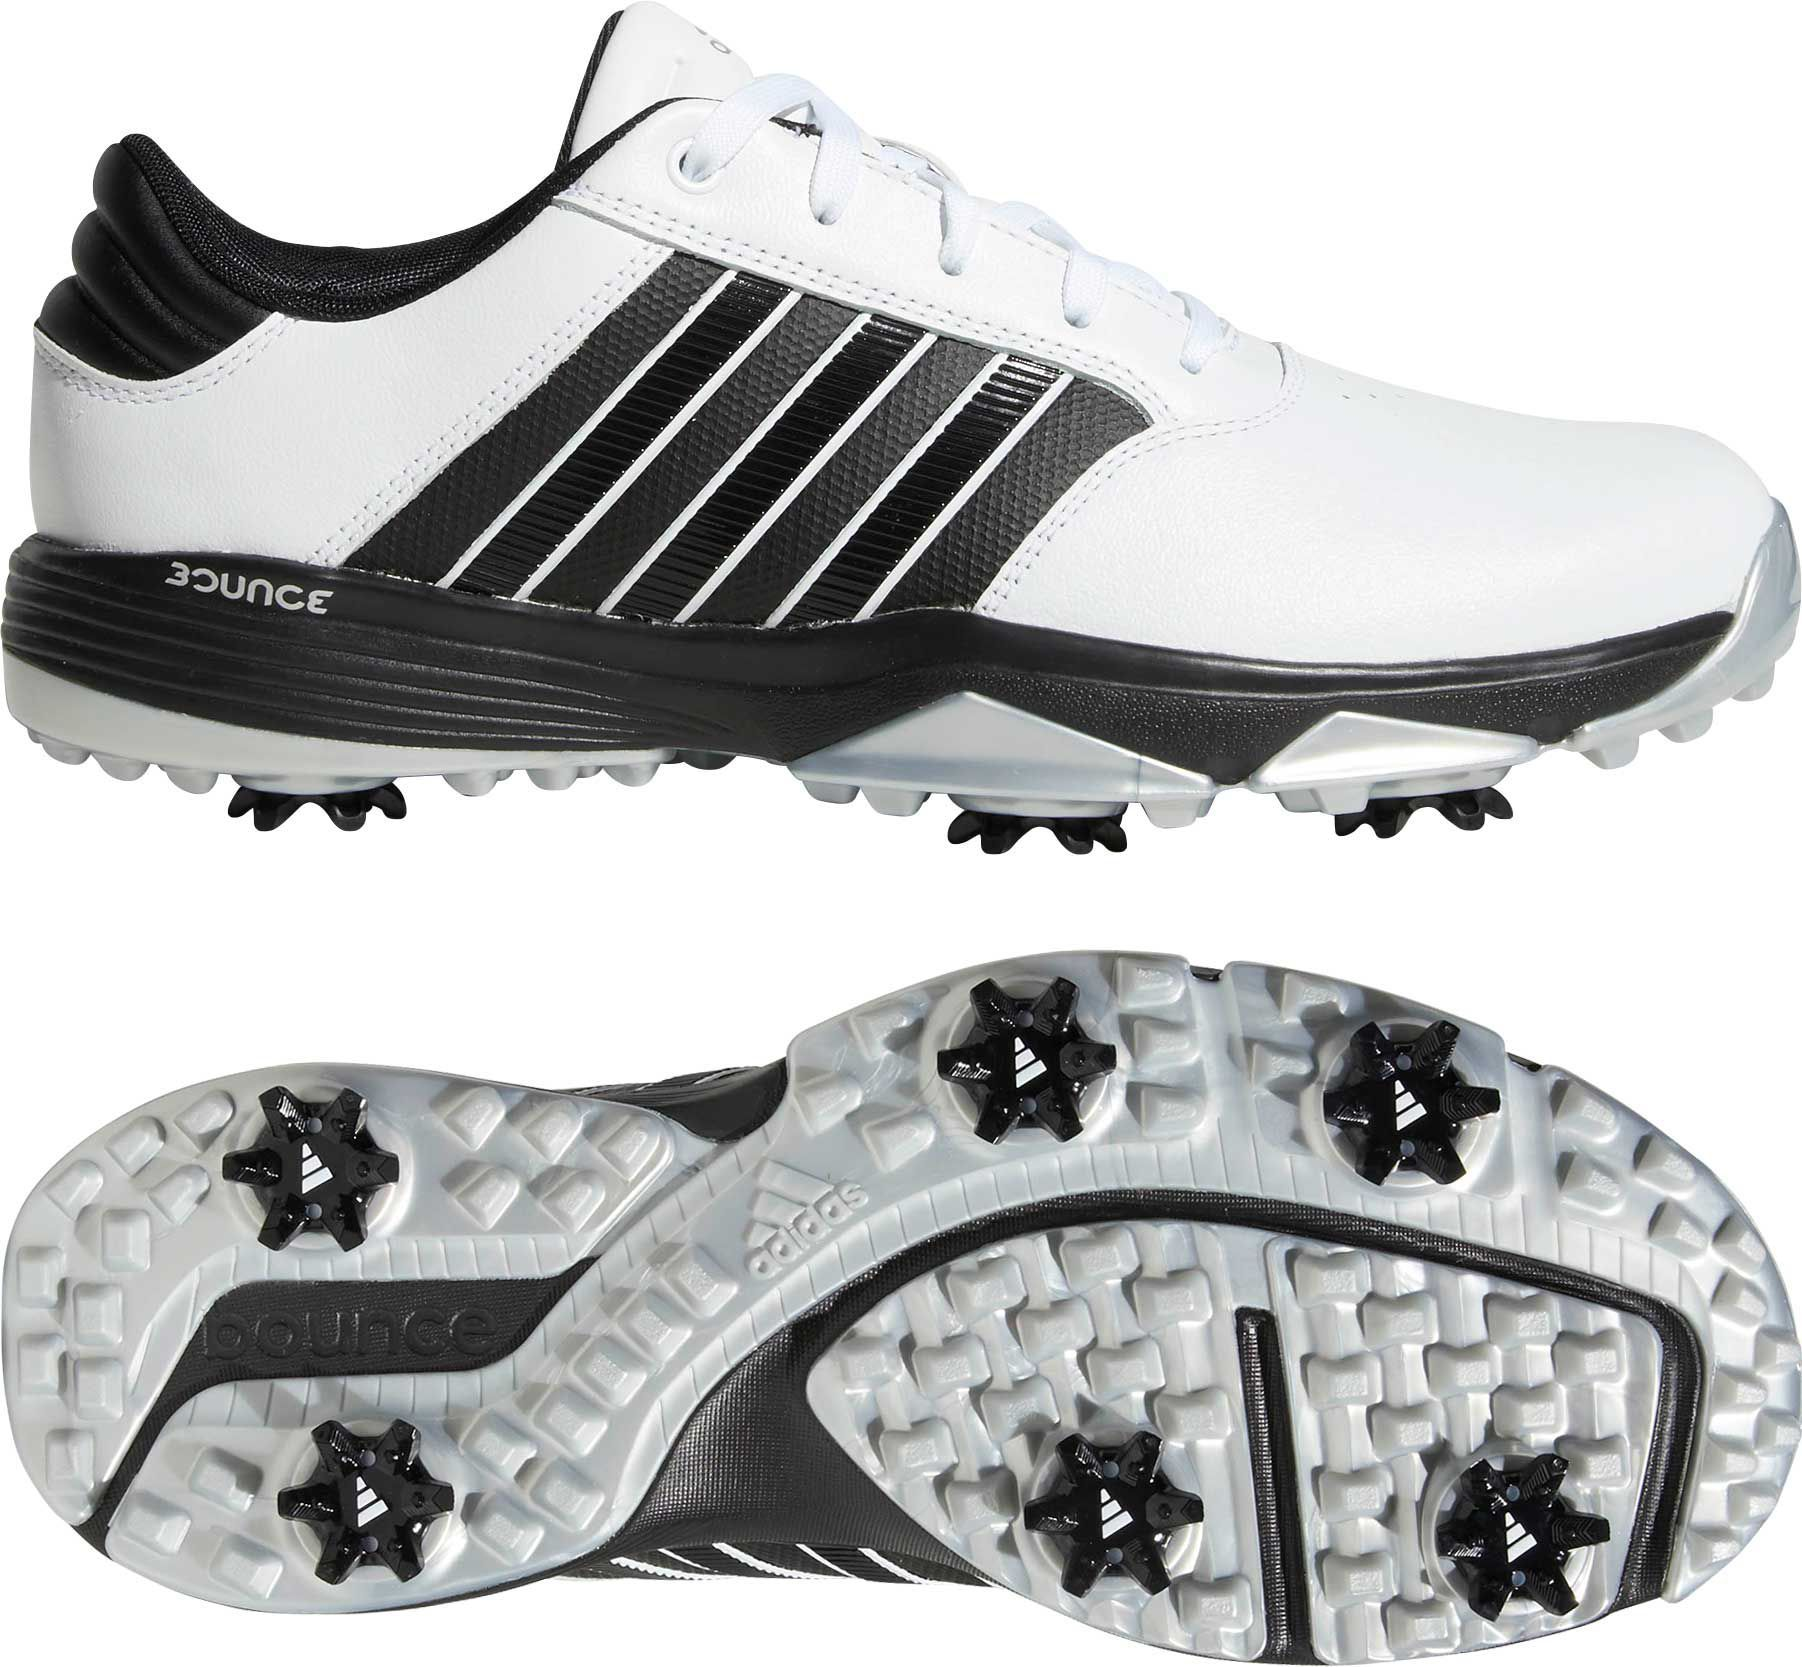 0a3952972a85 adidas Men s 360 Bounce Golf Shoes